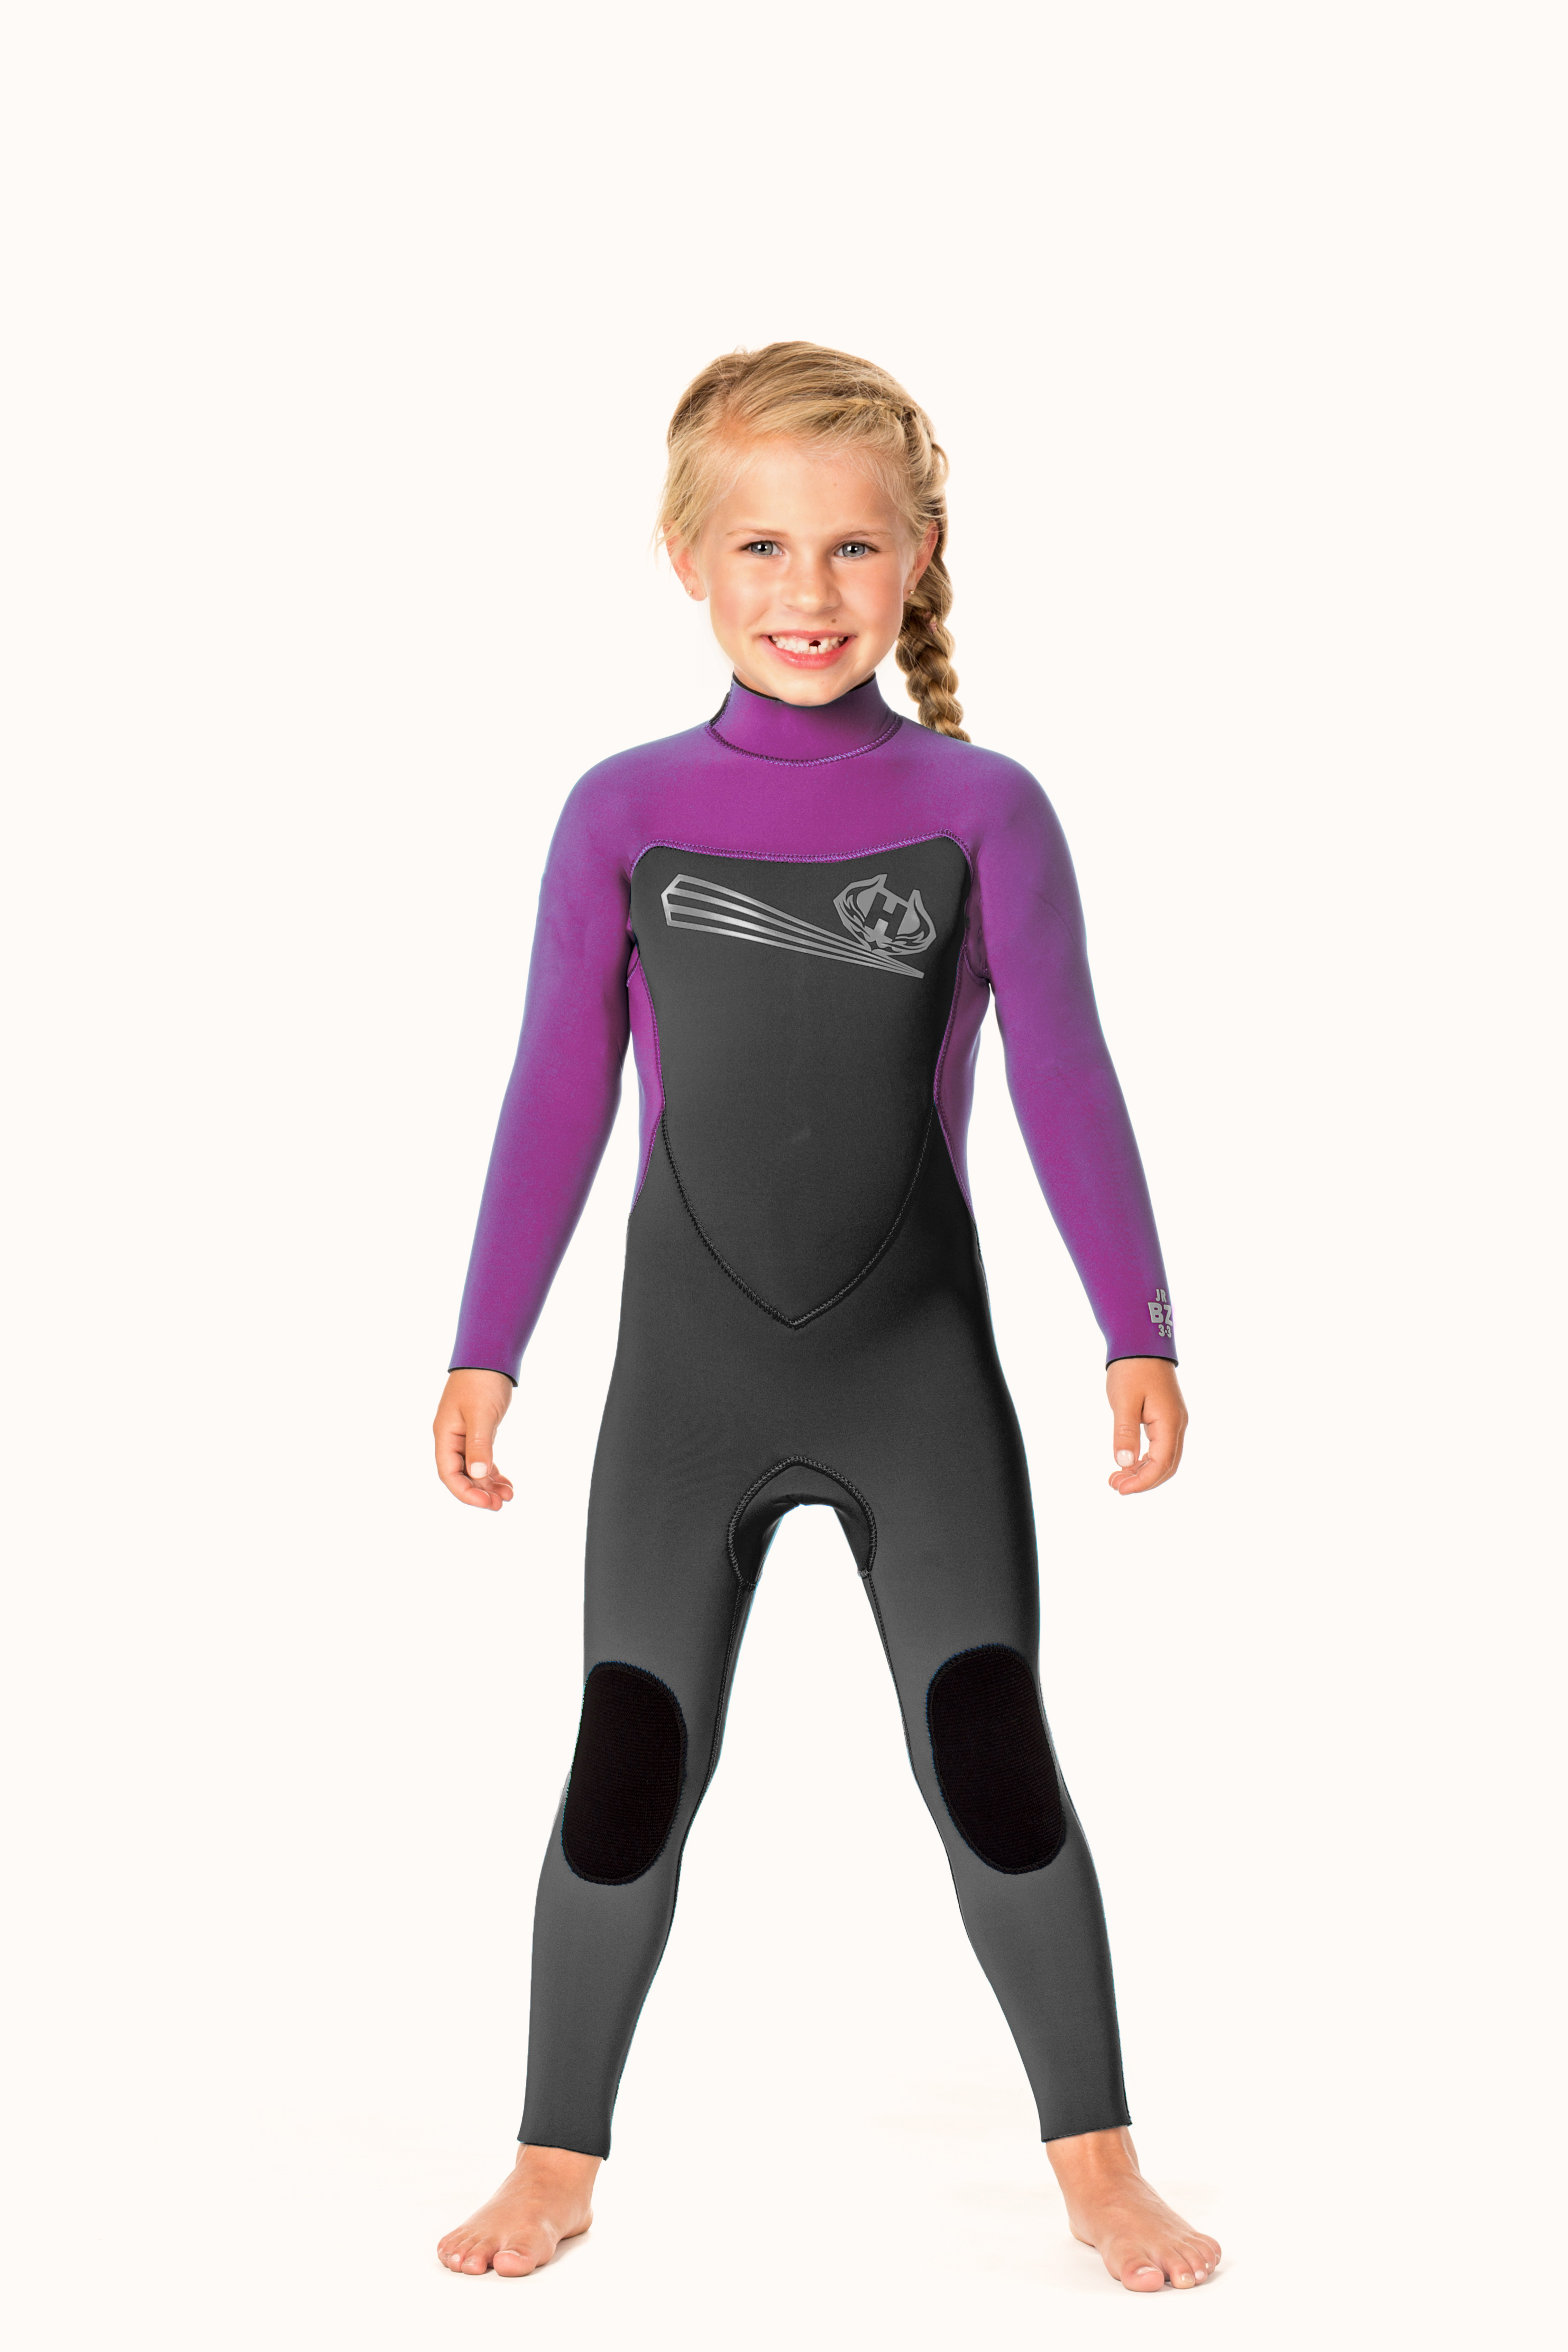 Toddler Back Zip 5/3m Wetsuit with Ankle Zippers - Raspberry/Royal Blue